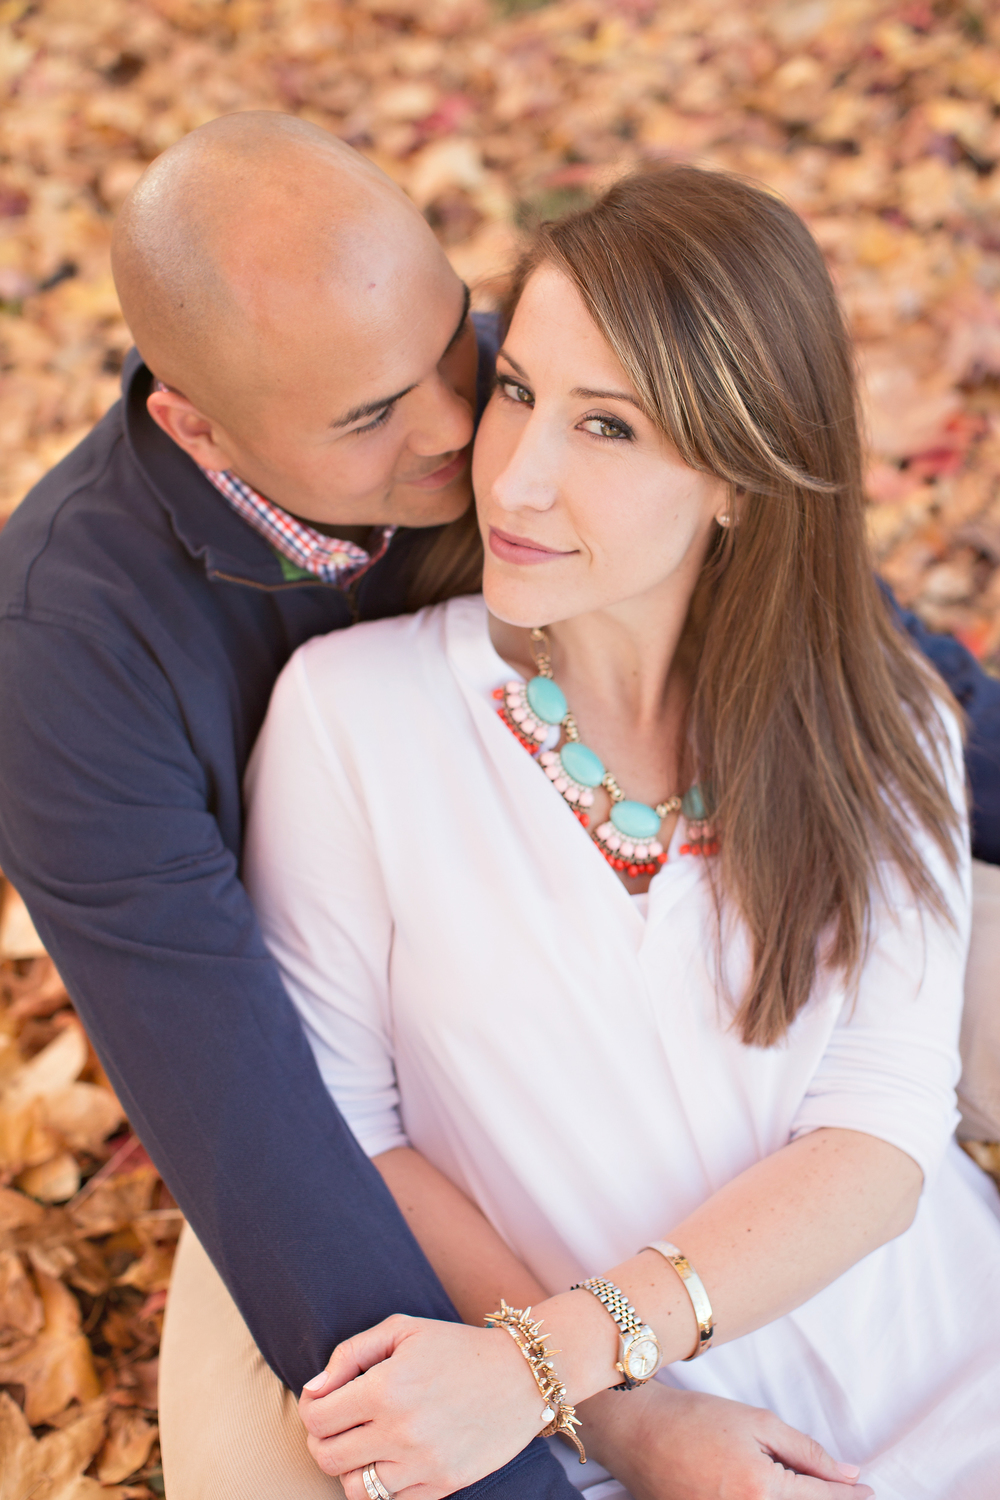 St-Louis-Engagement-Wedding-Photographer-AshlePhoto_0031.JPG